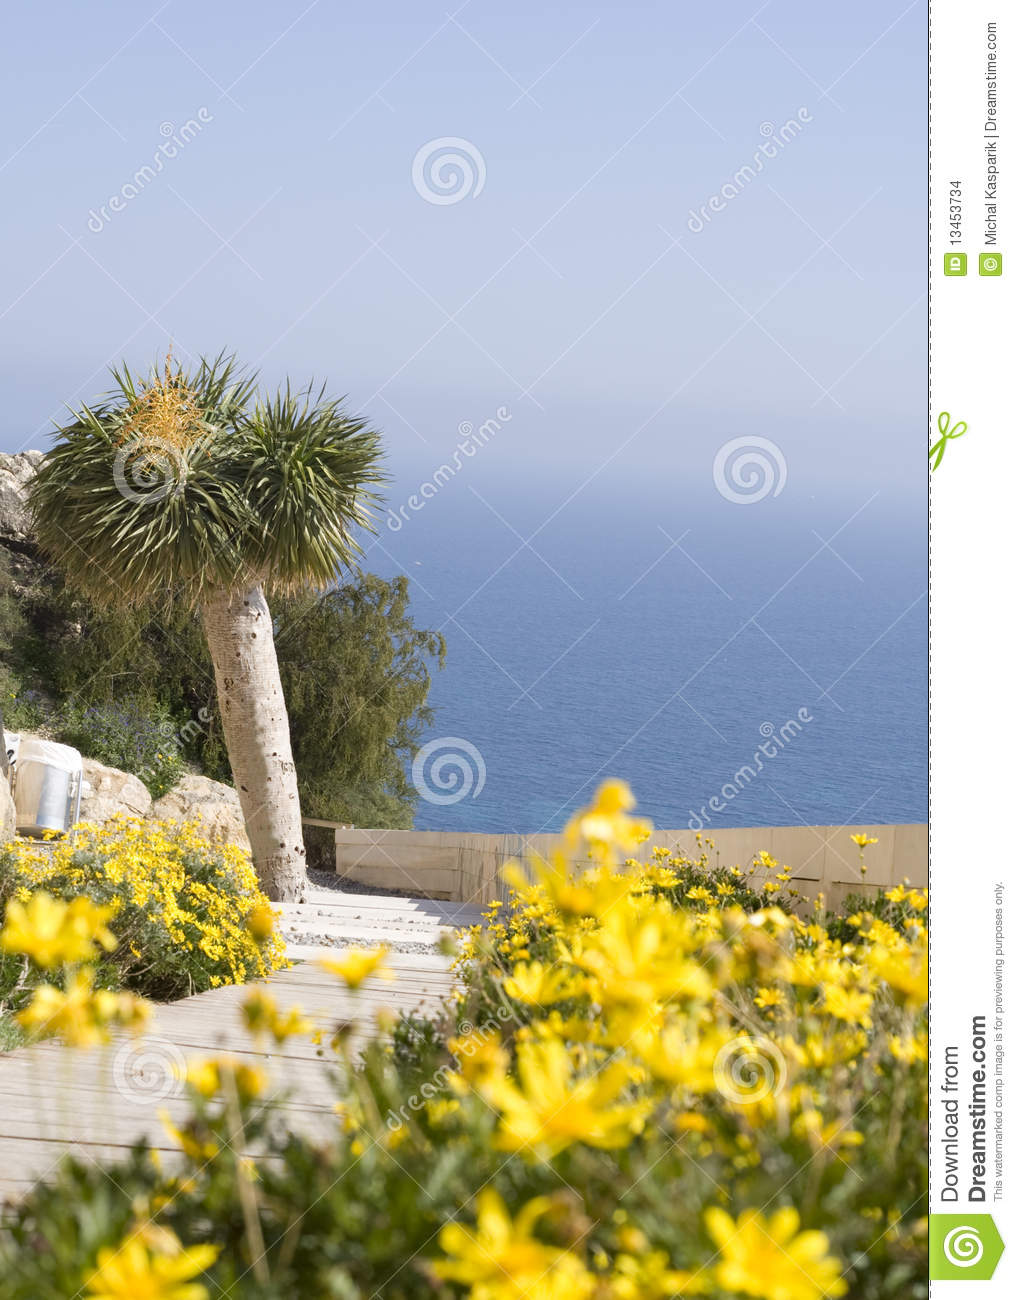 Yellow Flowers With Palmtree Stock Photo Image Of Alicante Bright